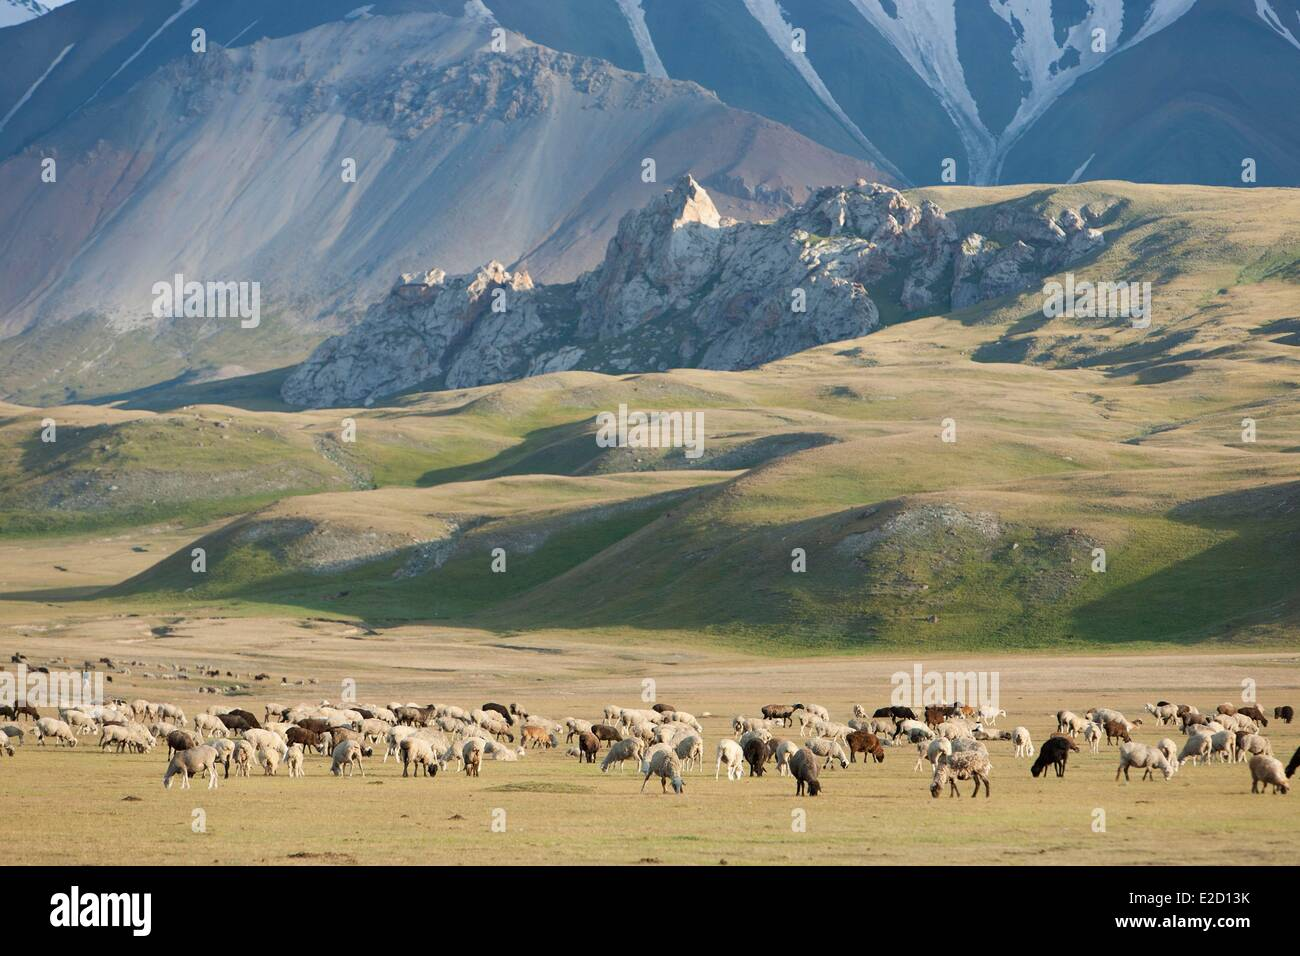 Kyrgyzstan Naryn Province Arpa valley flock of sheeps on summer pastures at the foothills of the Tian Shan mountain - Stock Image